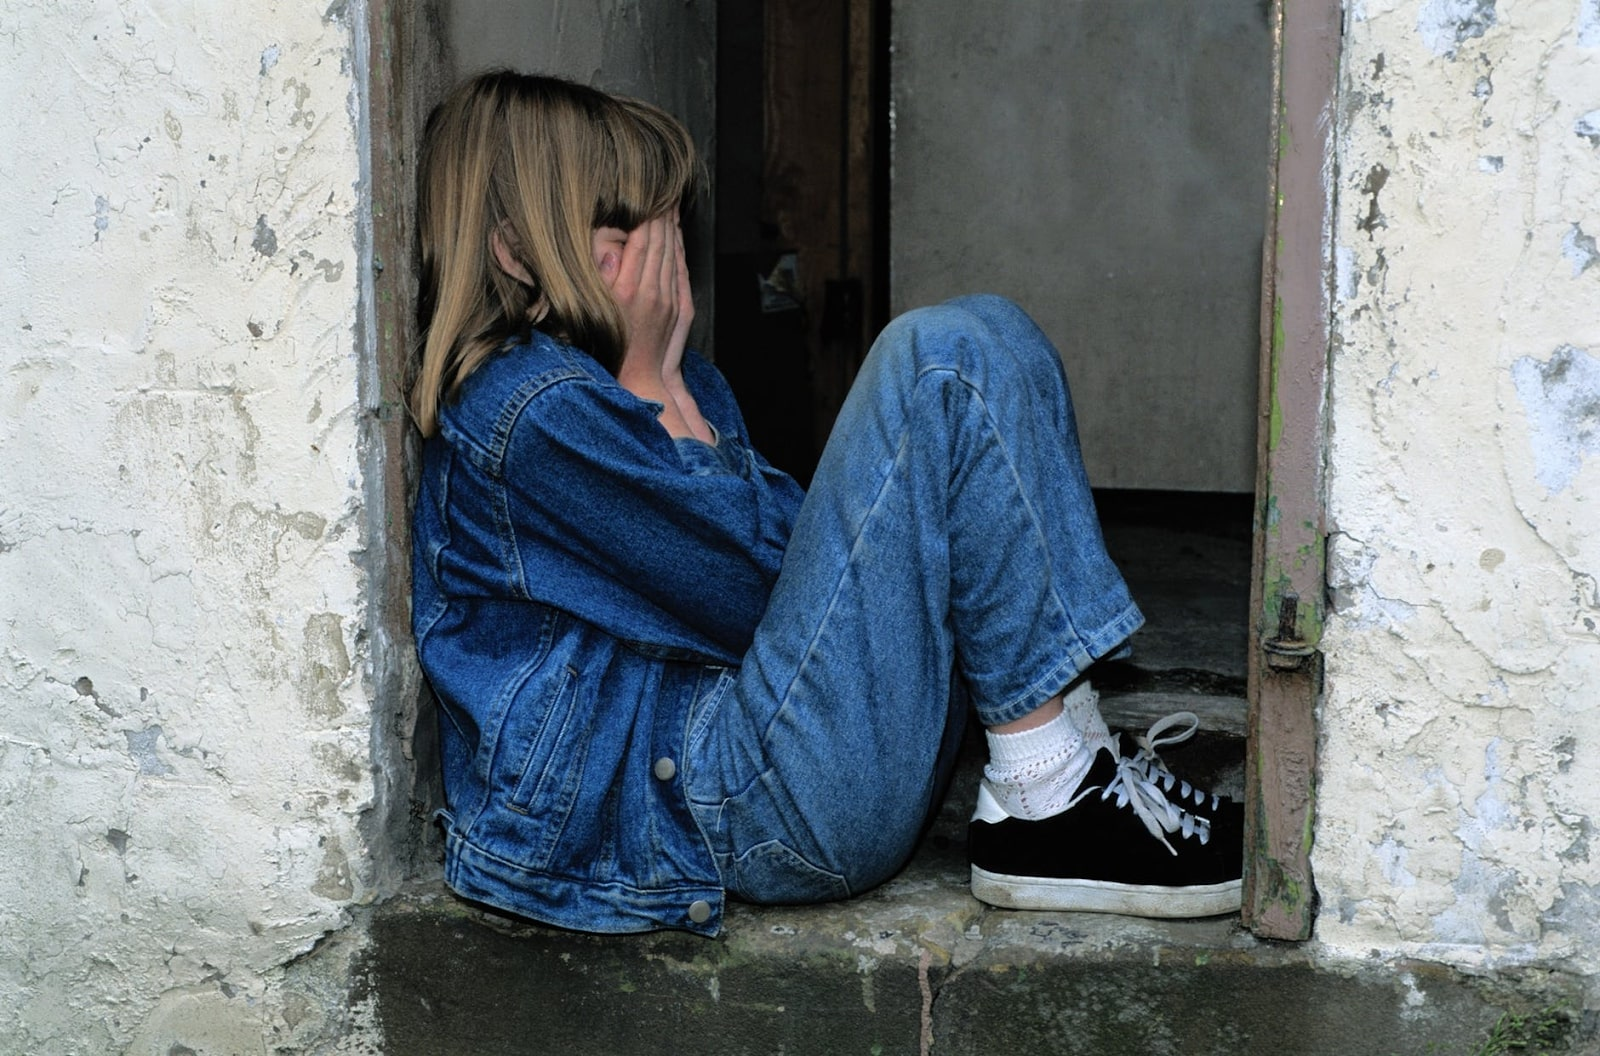 A concept photo of loneliness, showing a young girl from the side, wearing denim and covering her face, sitting in a small alcove.